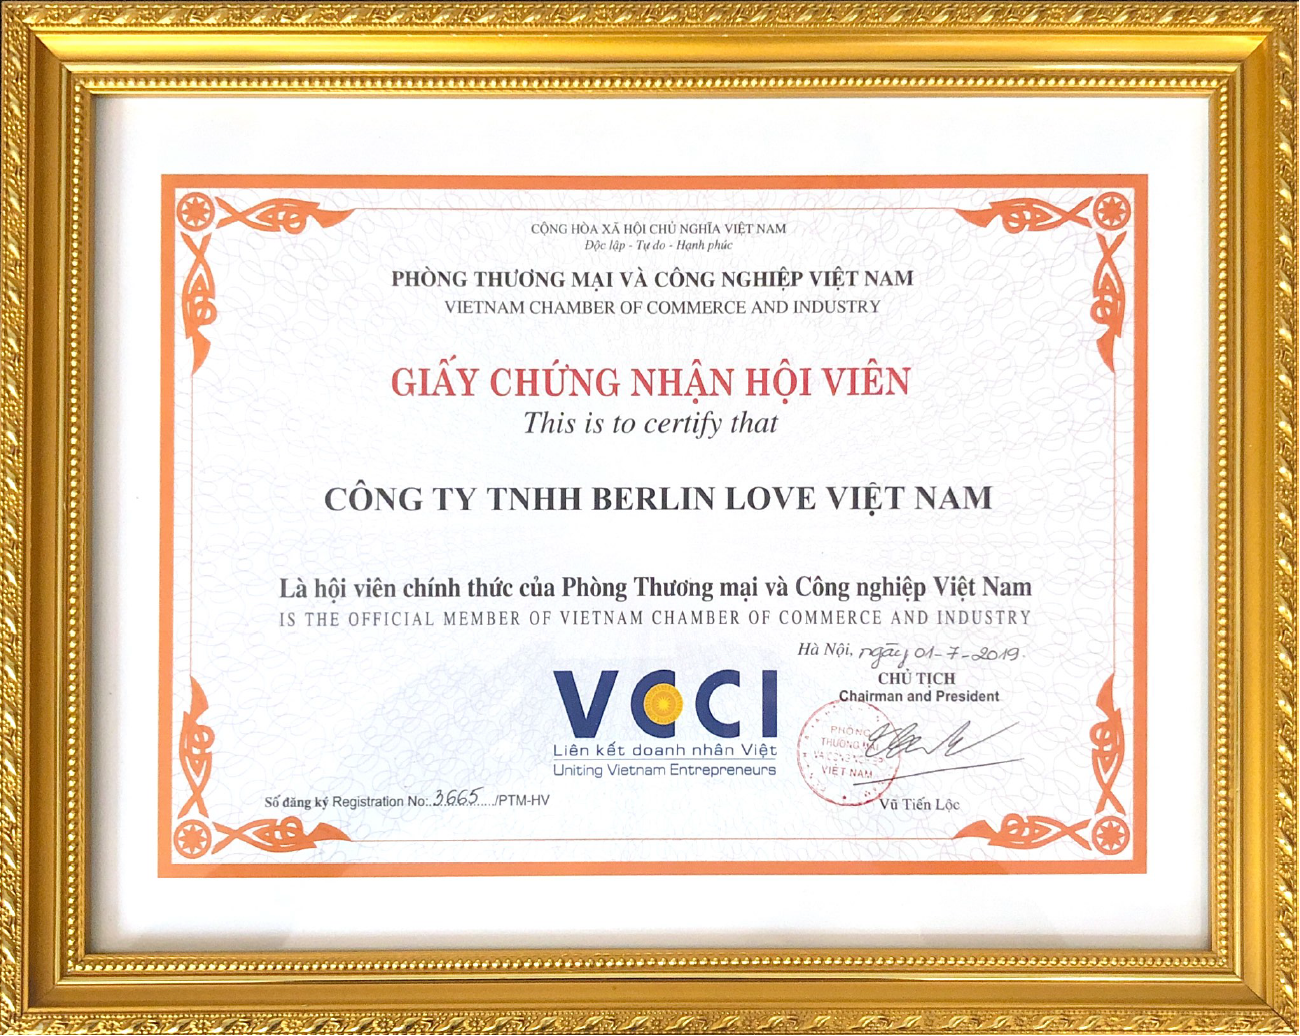 VCCI Certification Partnership